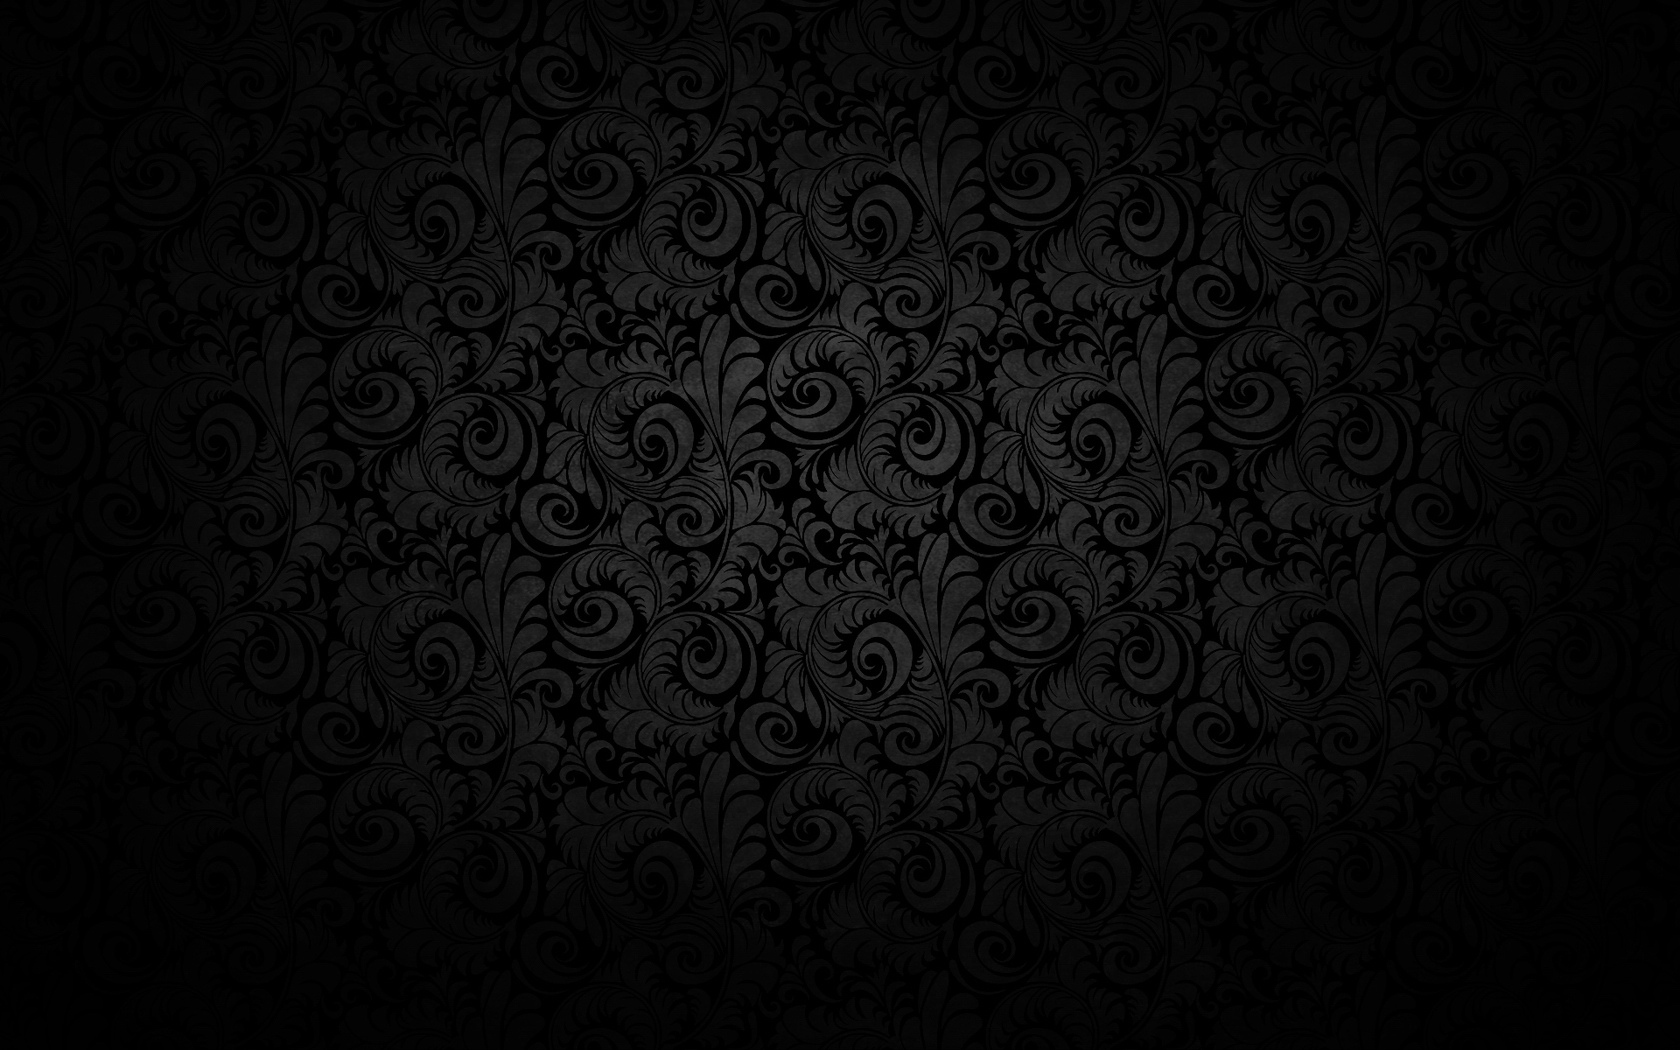 ... Black Desktop Wallpapers Hd Wallpapers Inn ...